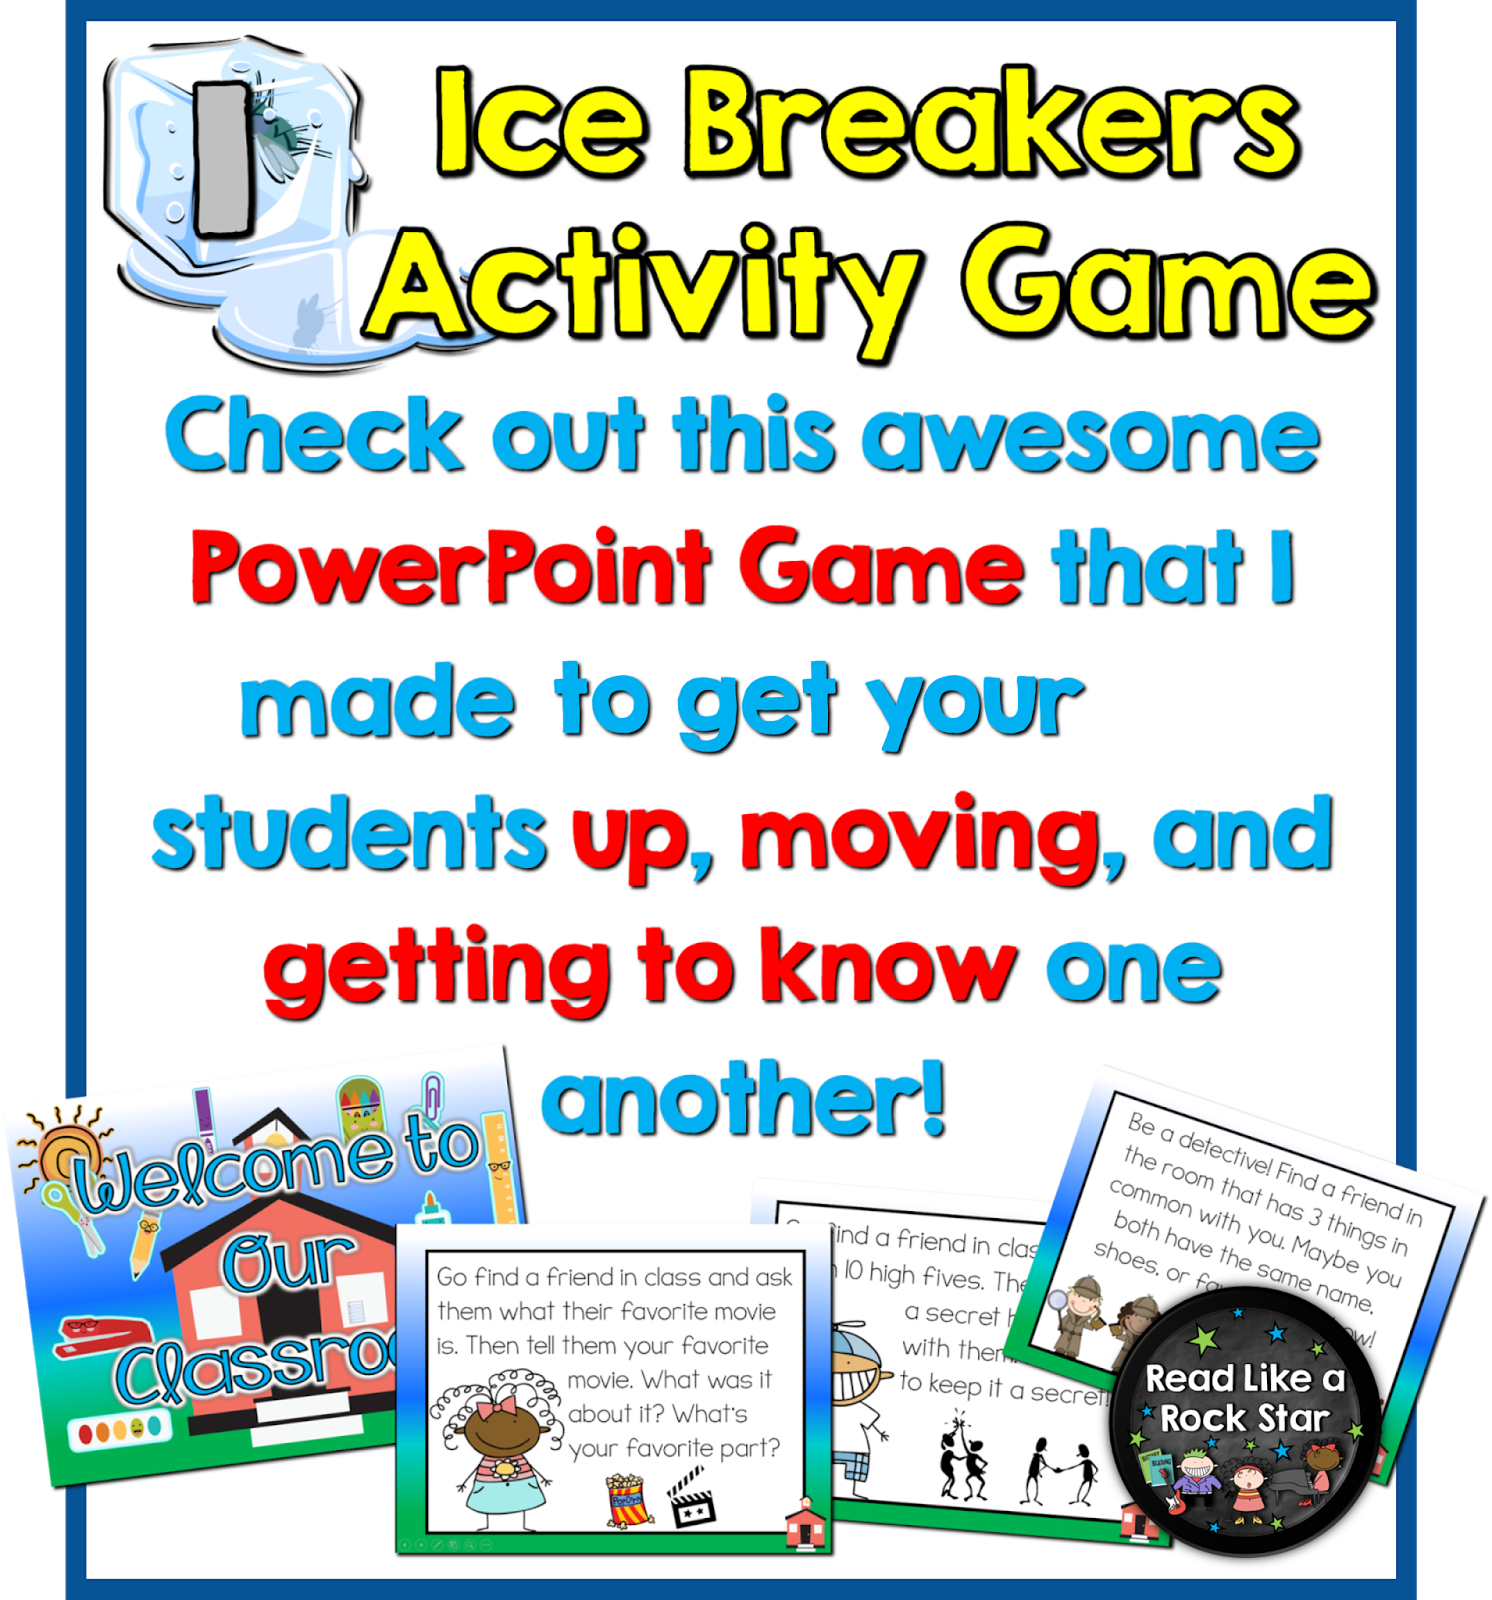 Read Like A Rock Star 5 Fun Ice Breaker Activities For The First Day Of School